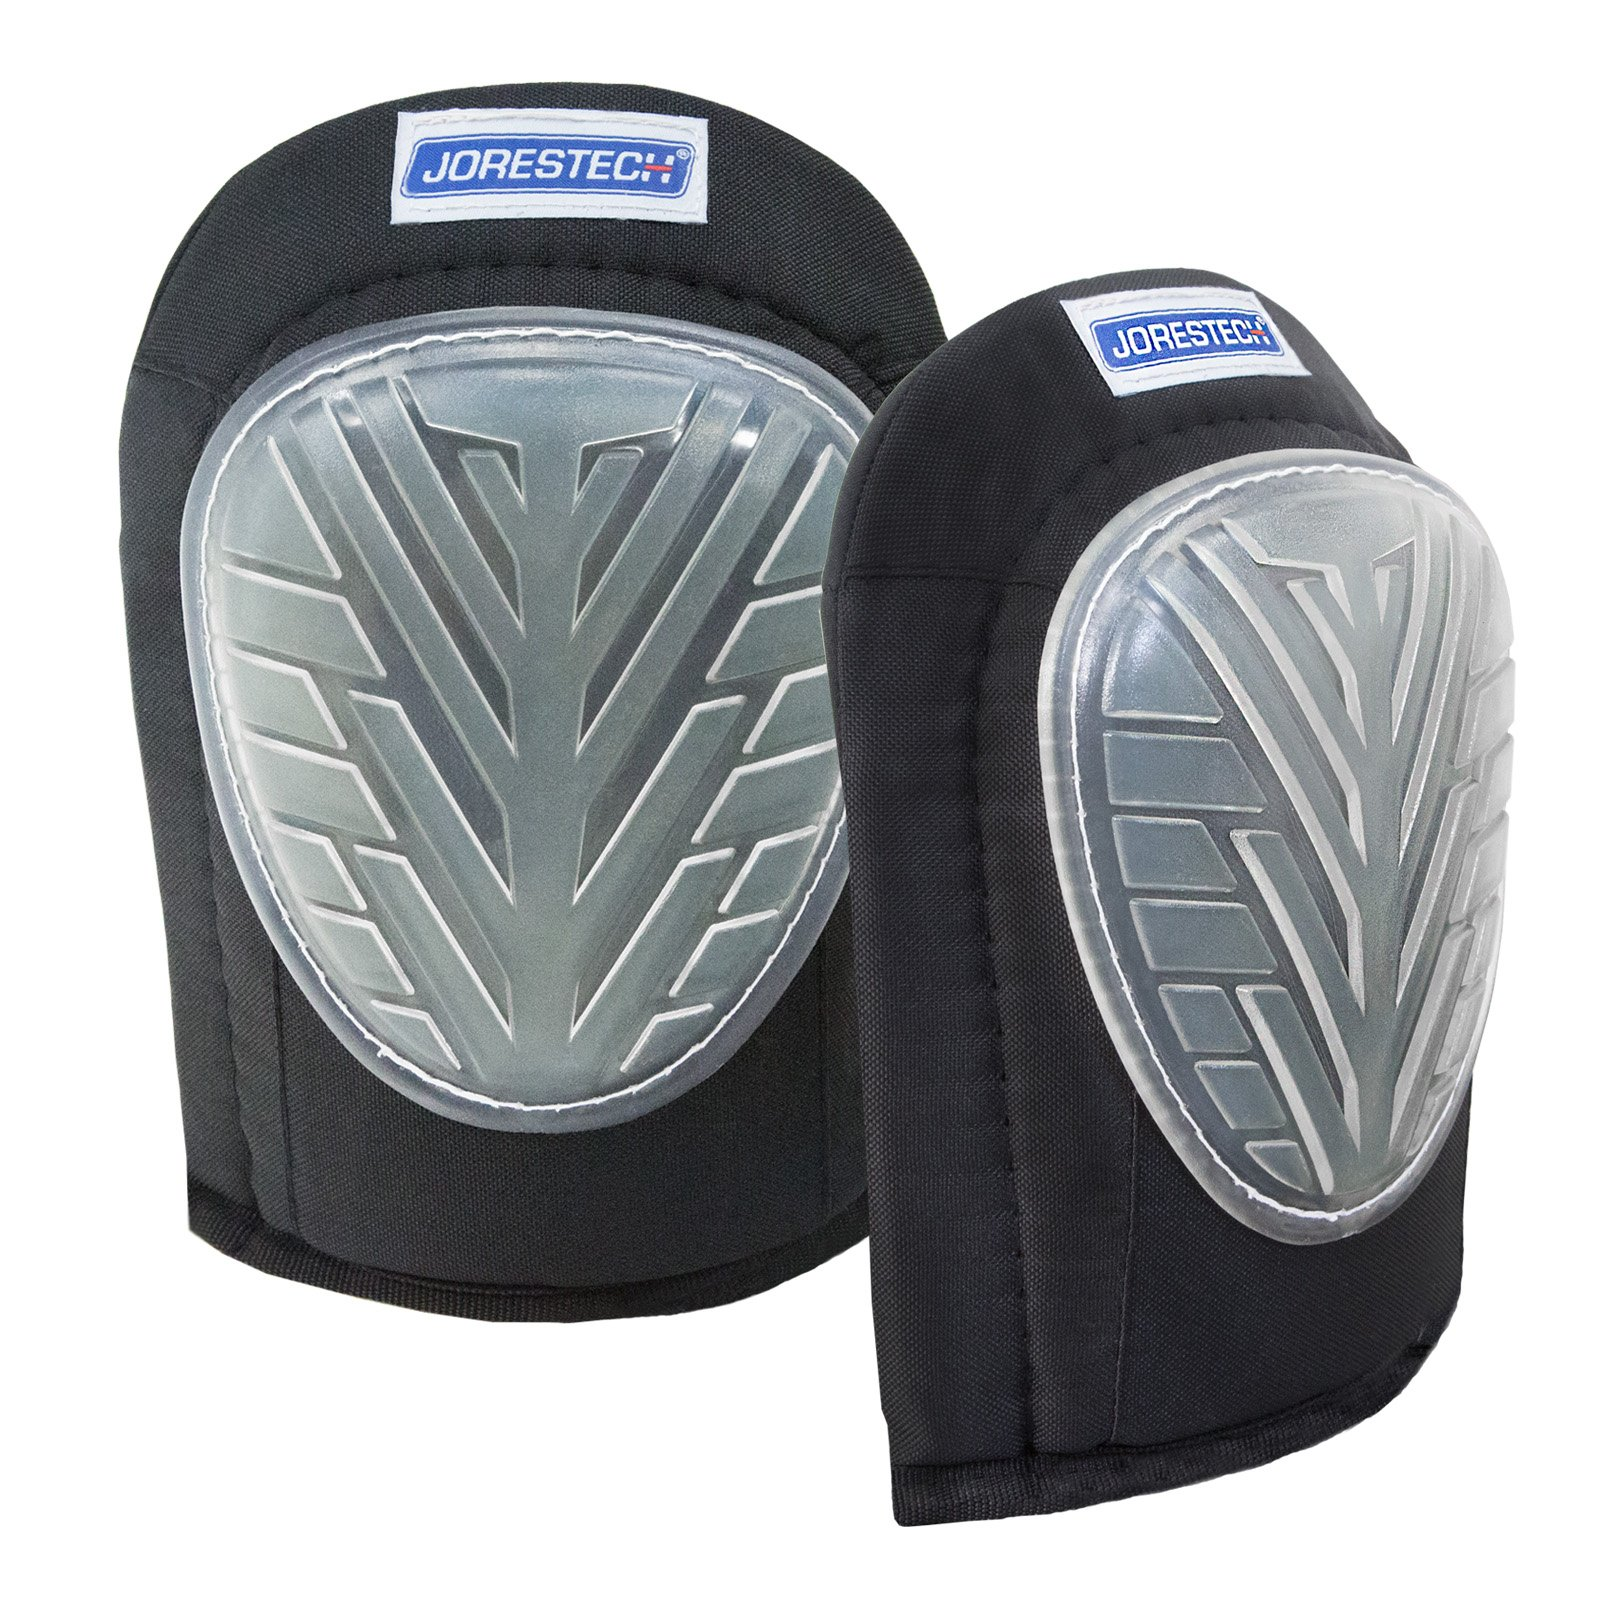 JORESTECH Protective Kneepads with Comfort Gel and non marking for flooring Contractor and Gardening (Memory Foam Lined for extra comfort)